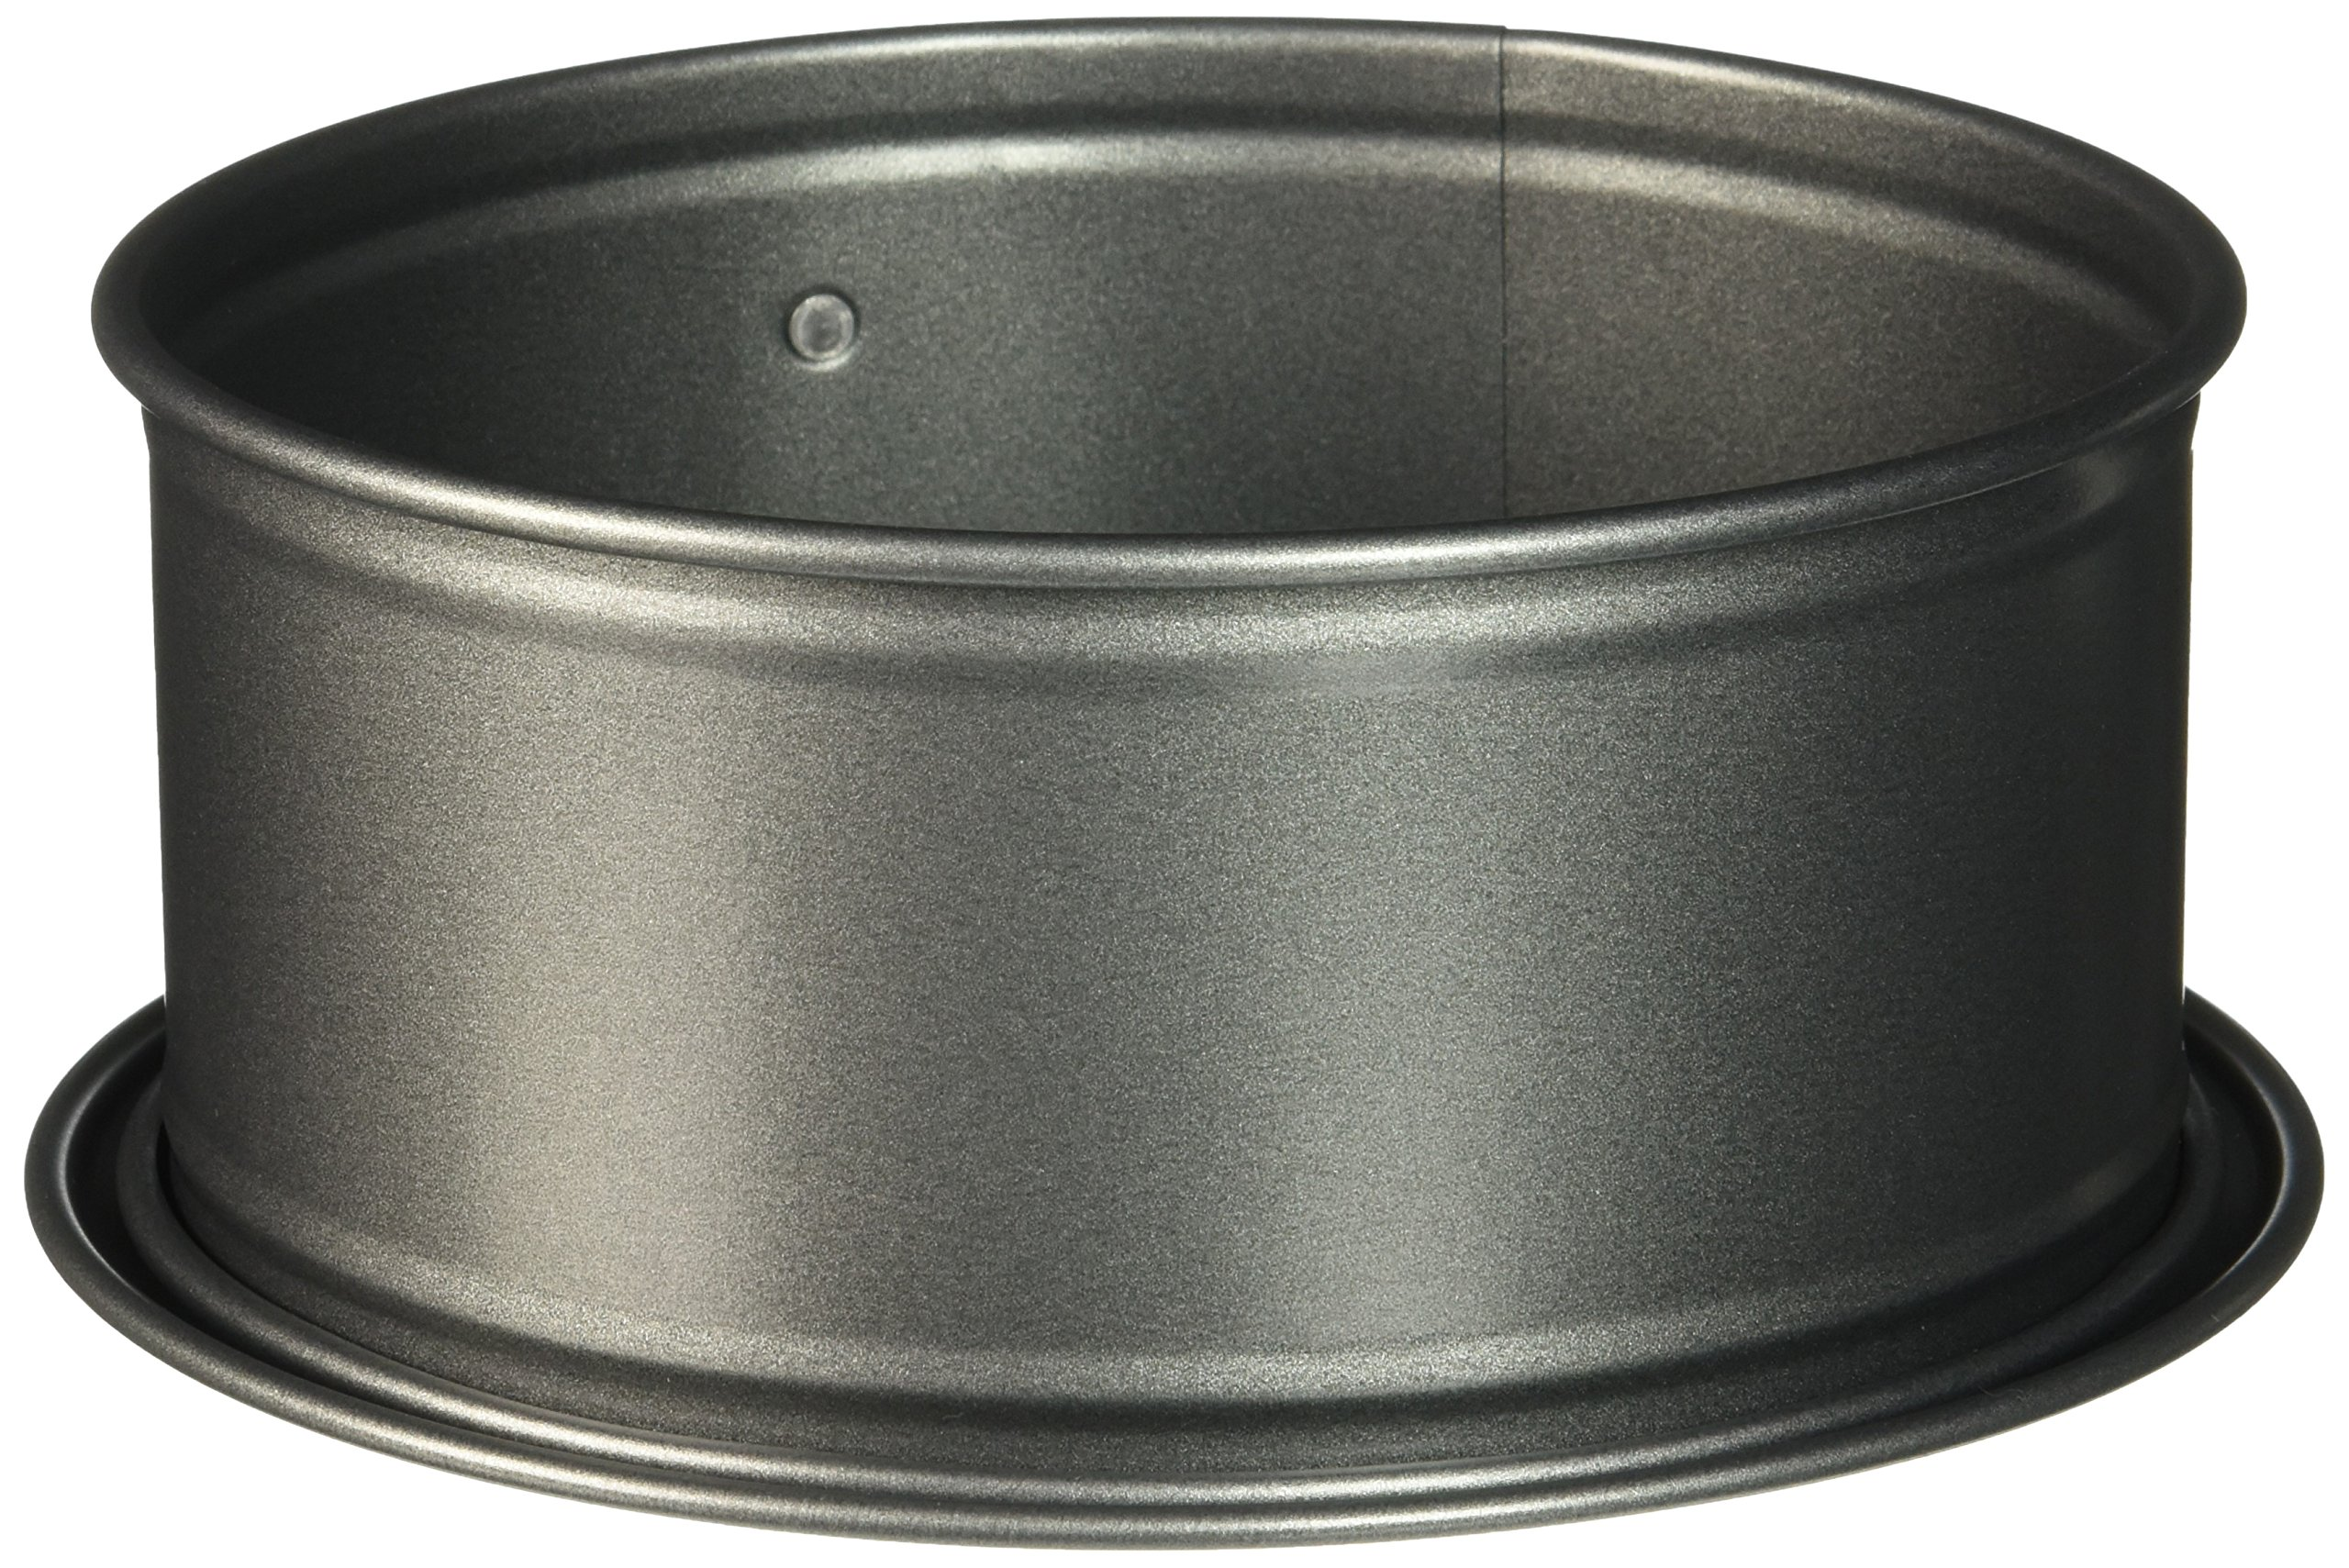 Nordic Ware 51842 Leakproof Springform Pan, 7 Inch, Charcoal by Nordic Ware (Image #2)